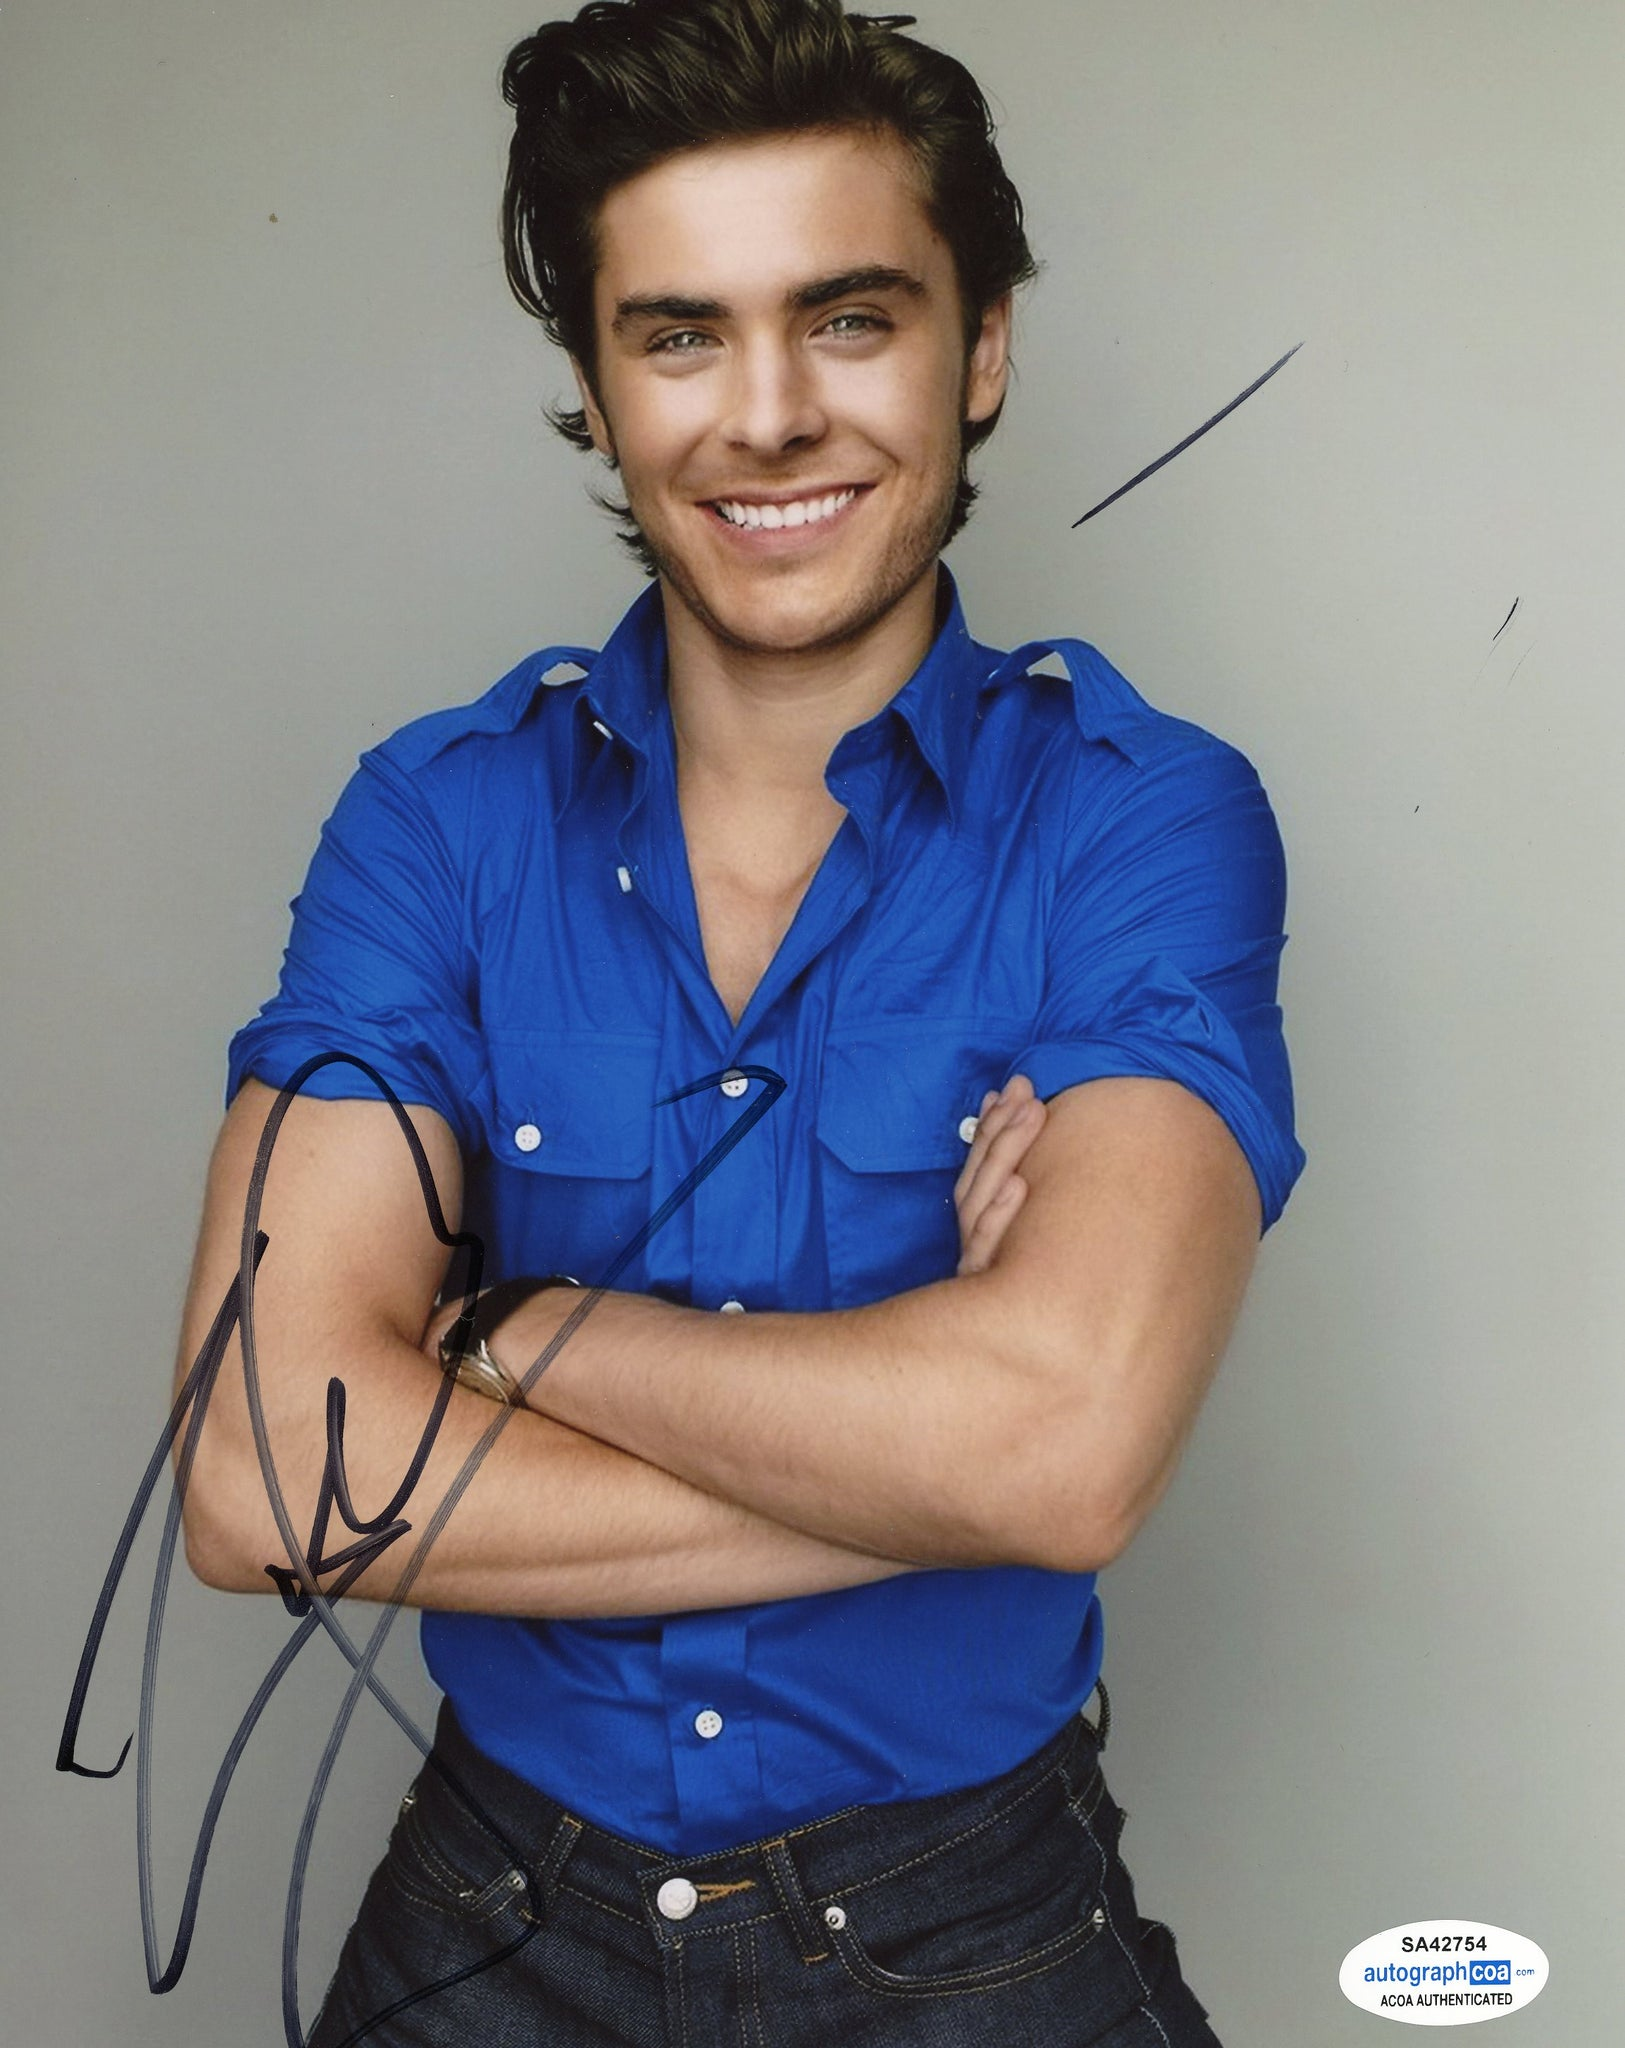 Zac Efron Hot Signed Autograph 8x10 Photo ACOA #2